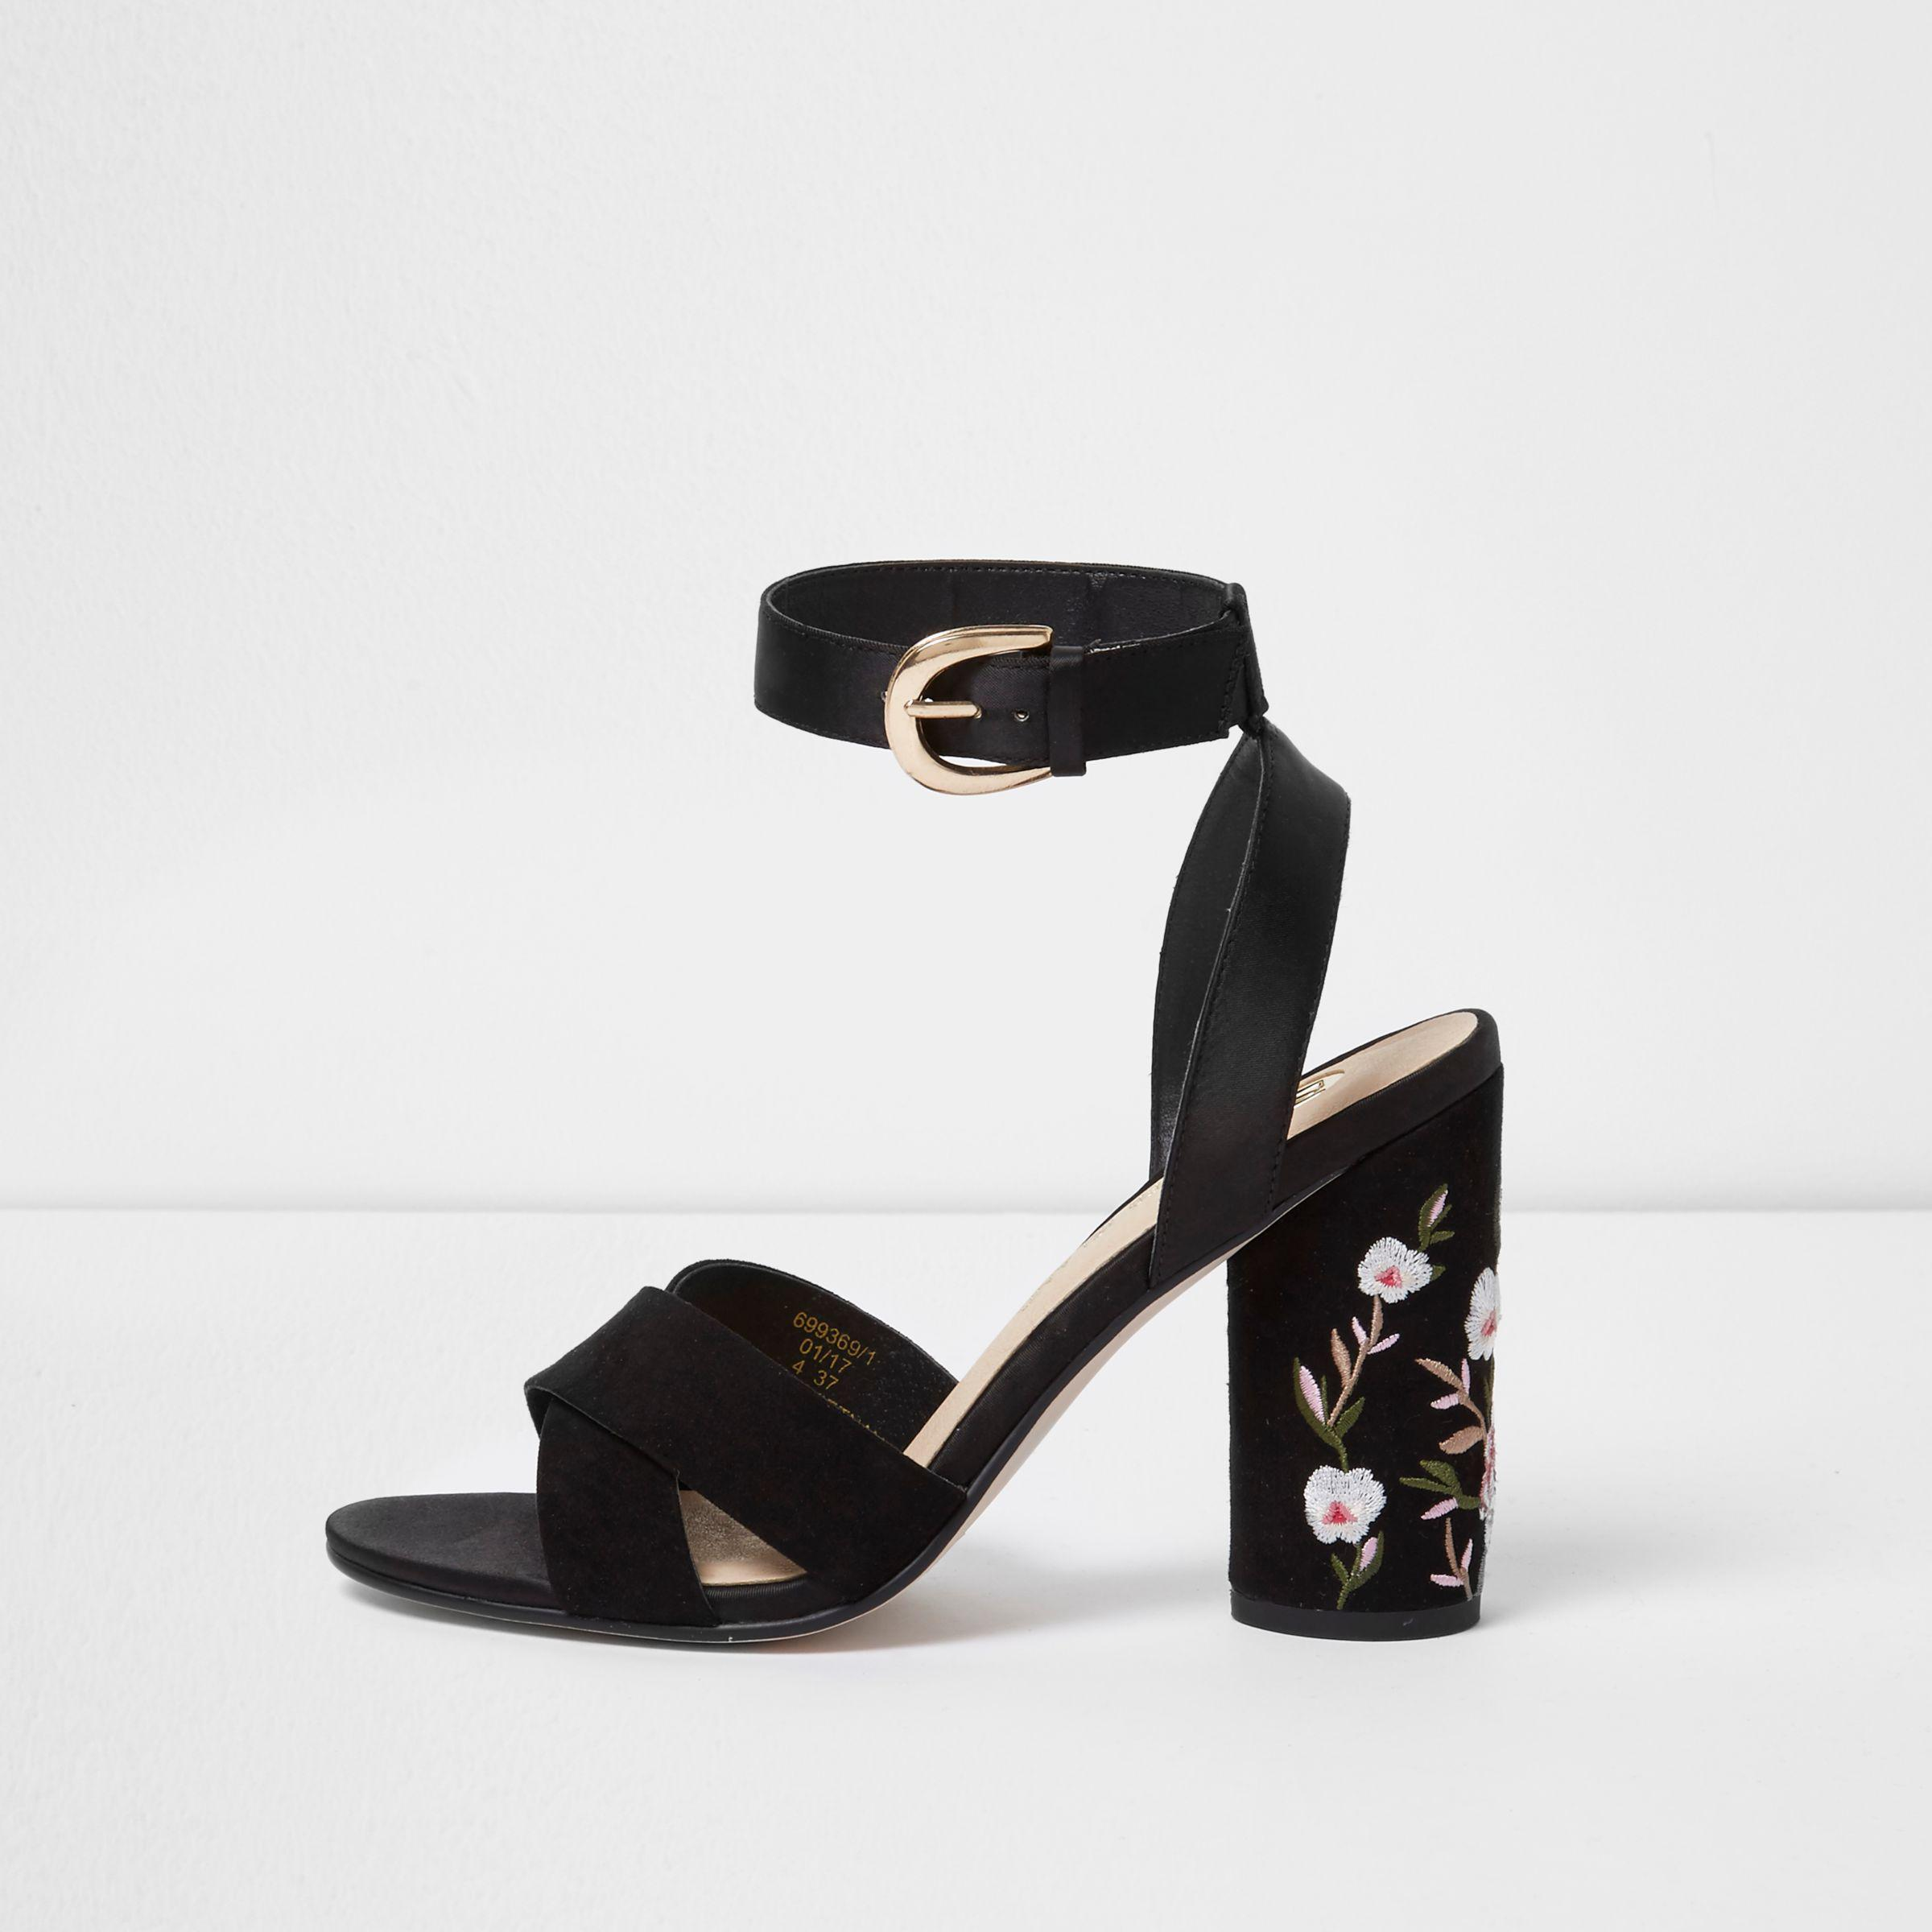 057539c4a Lyst - River Island Black Floral Embroidered Block Heel Sandals in Black